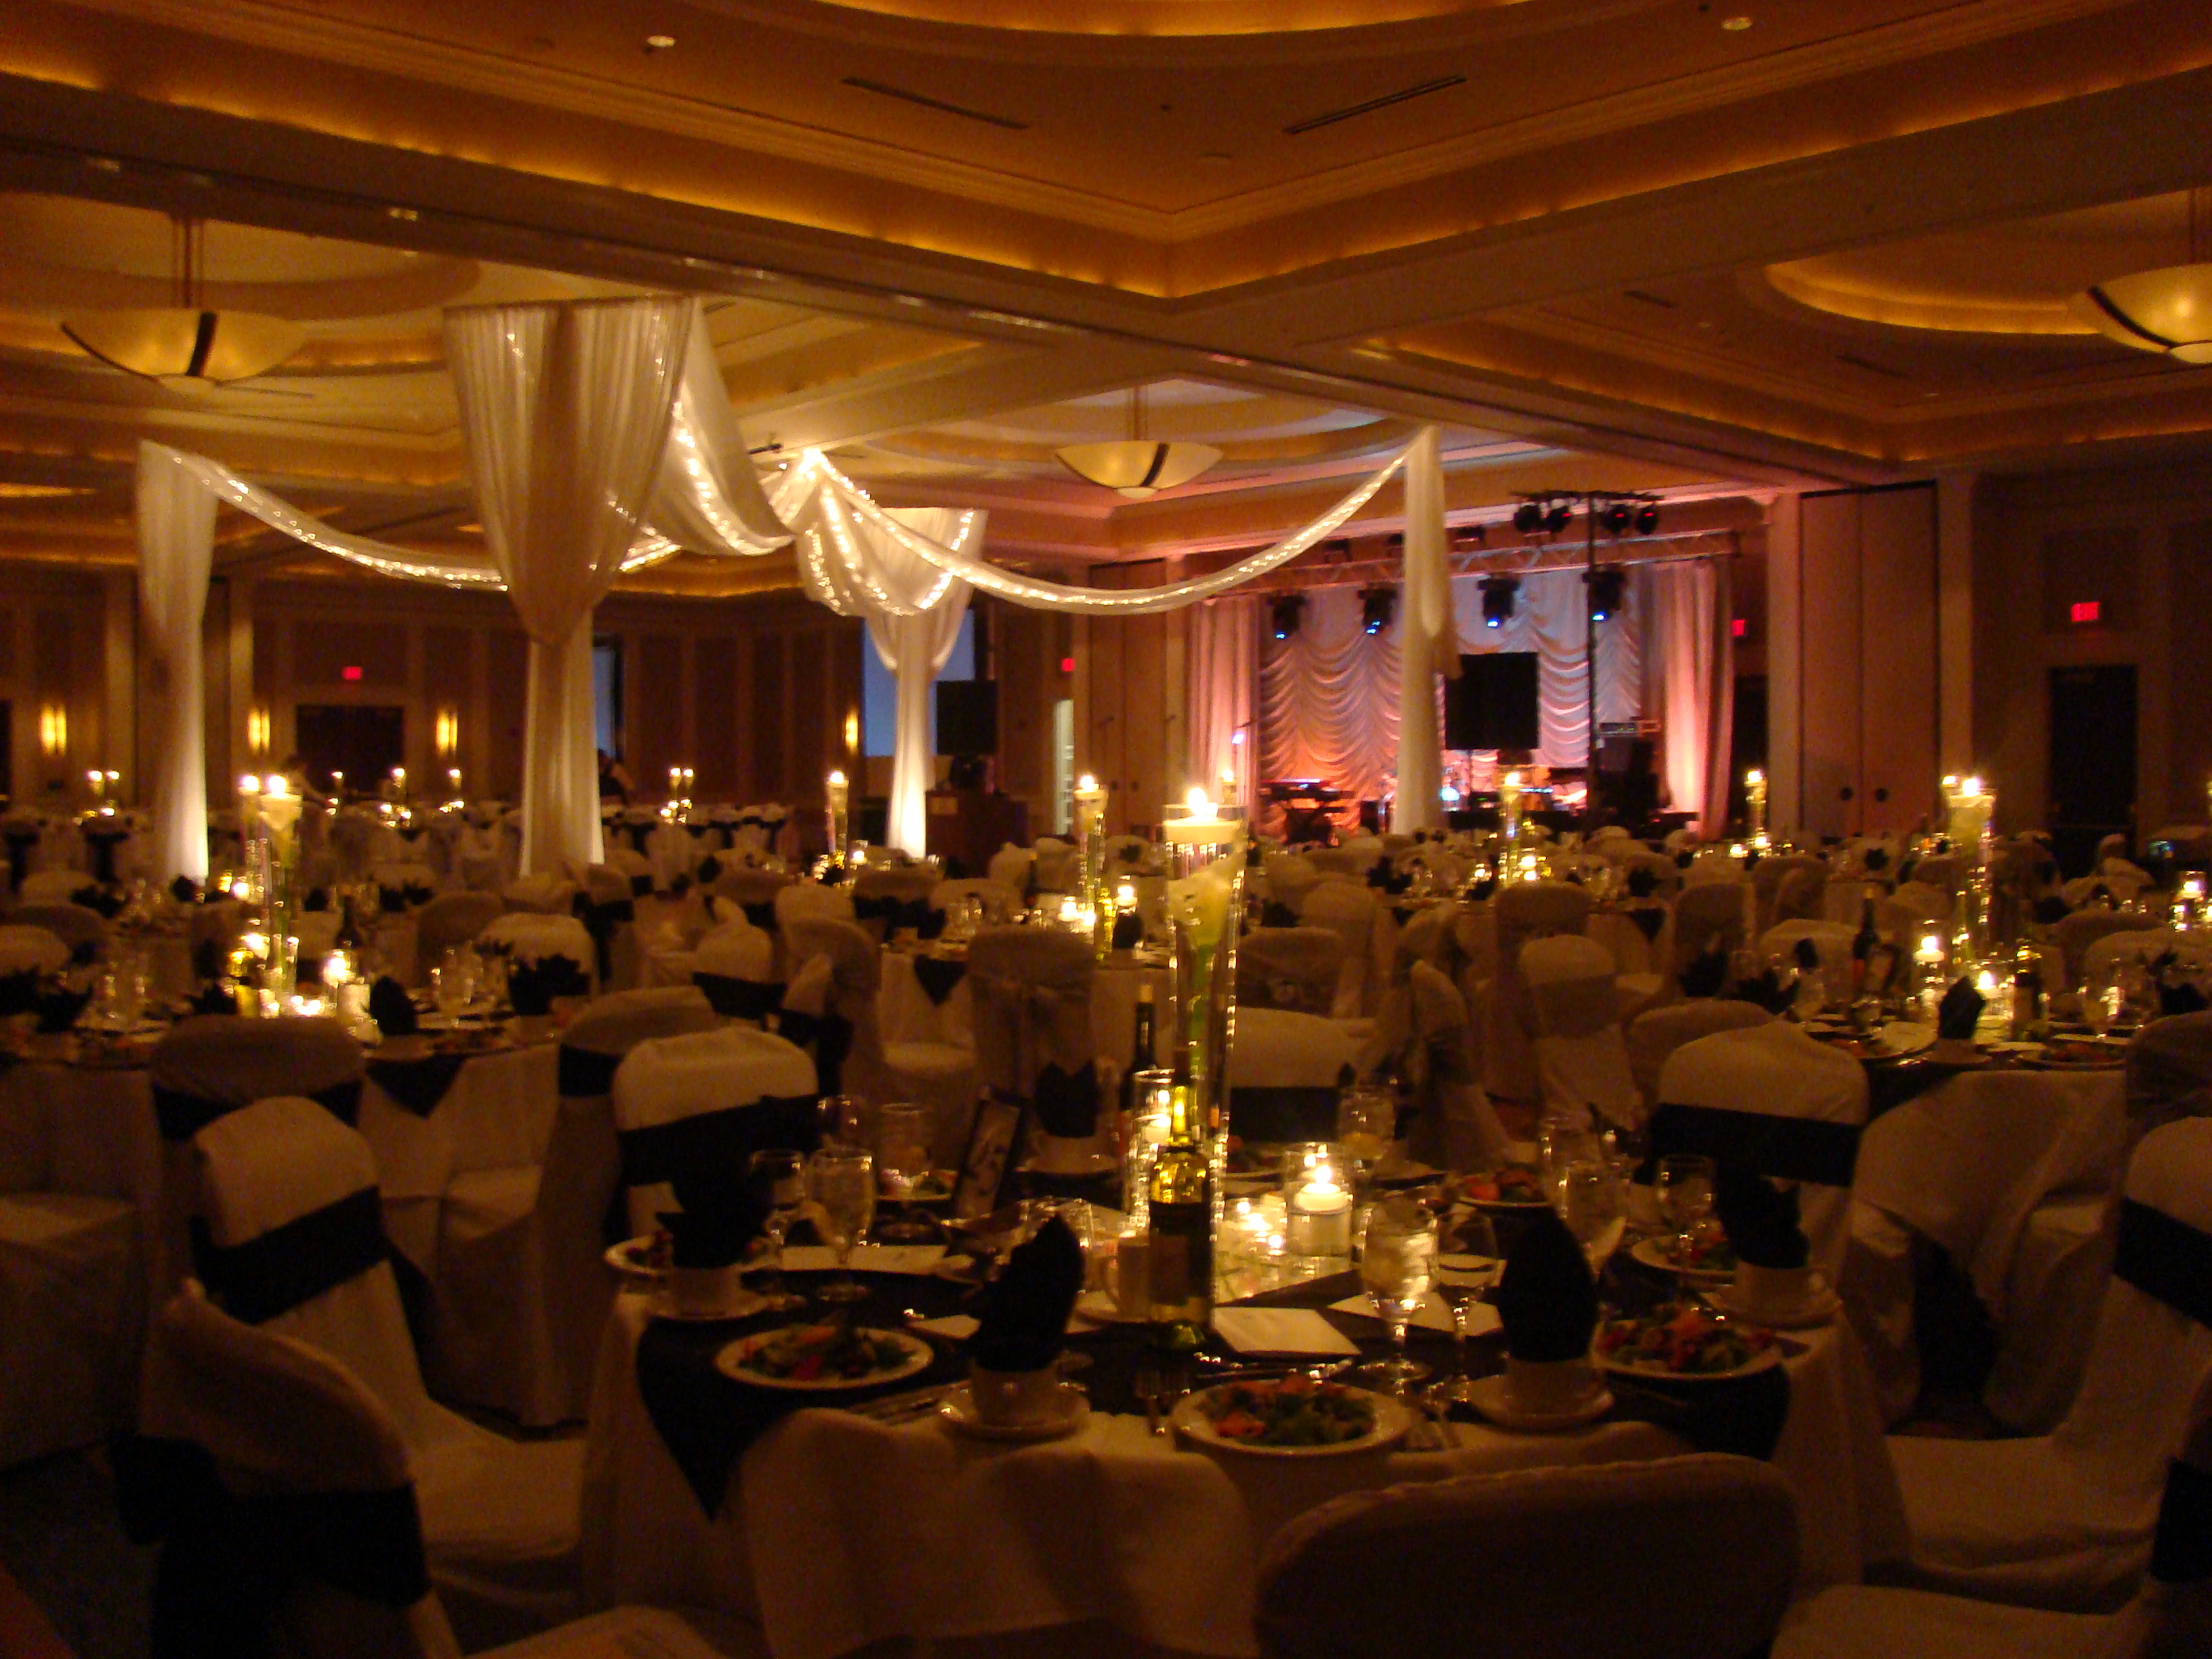 Hilton Downtown Candlelight Ball 3-10-2012 0141